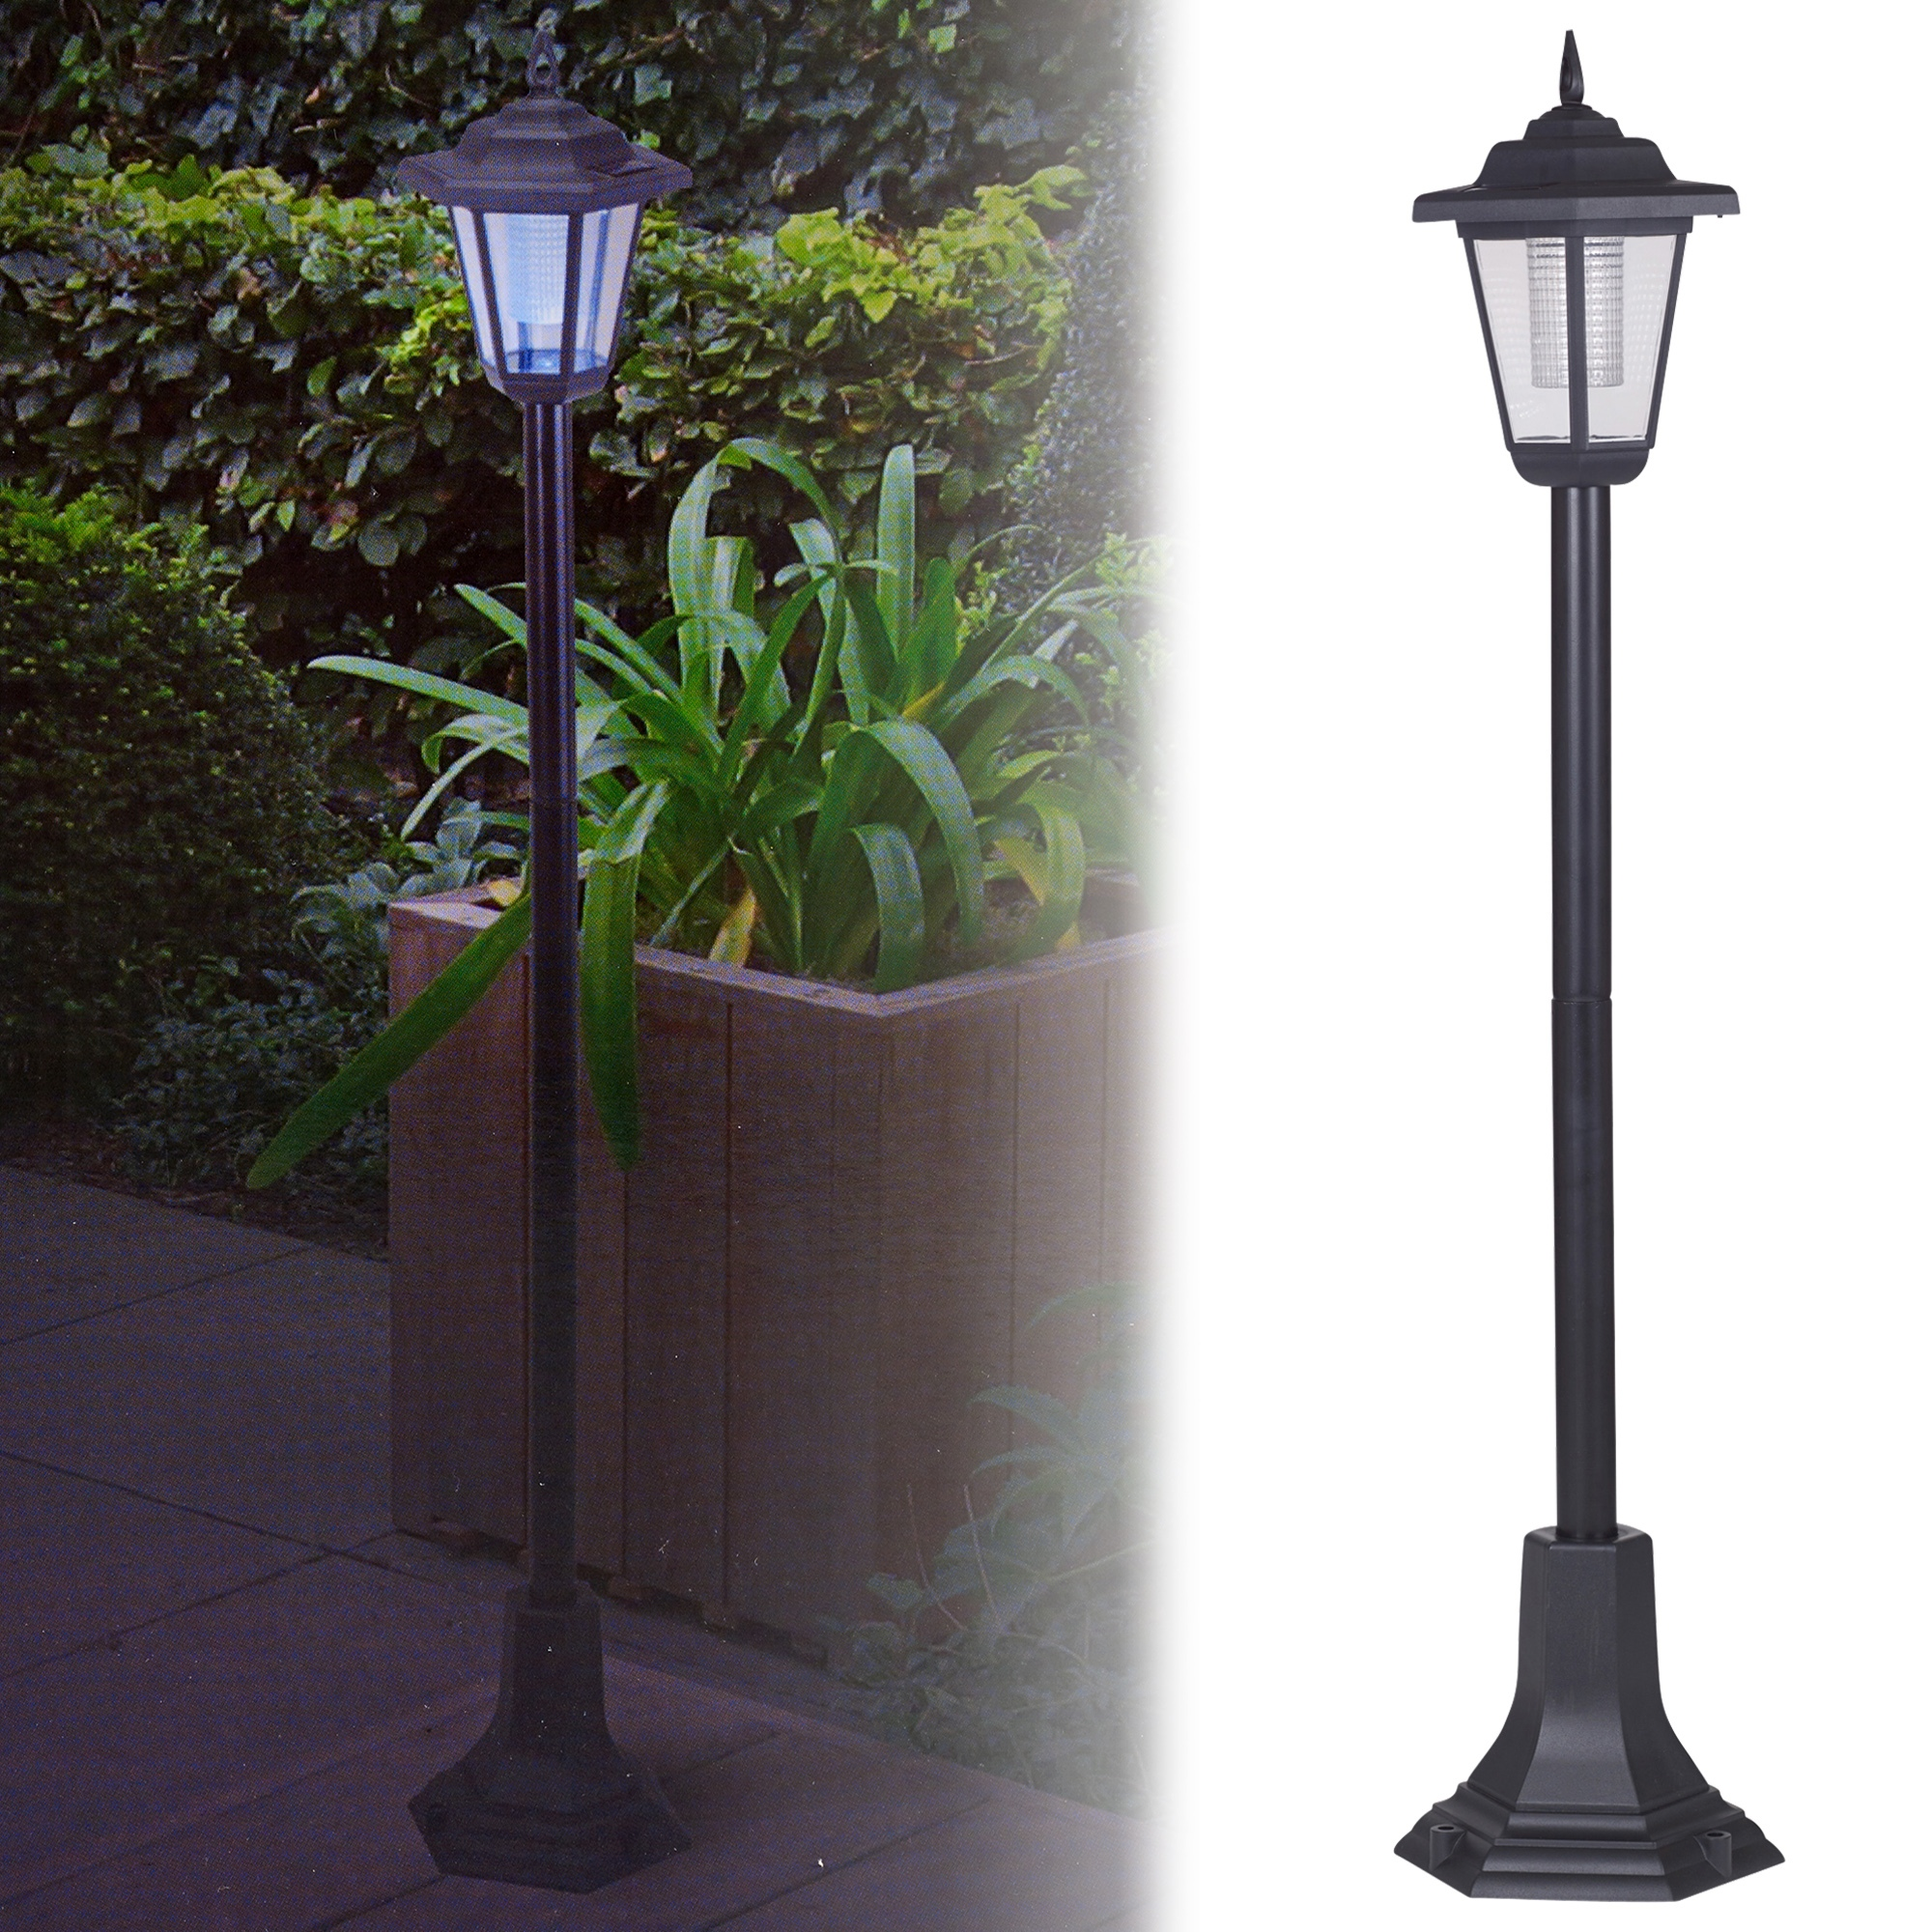 Solar powered garden lights lantern lamp black led pathway for Garden lights